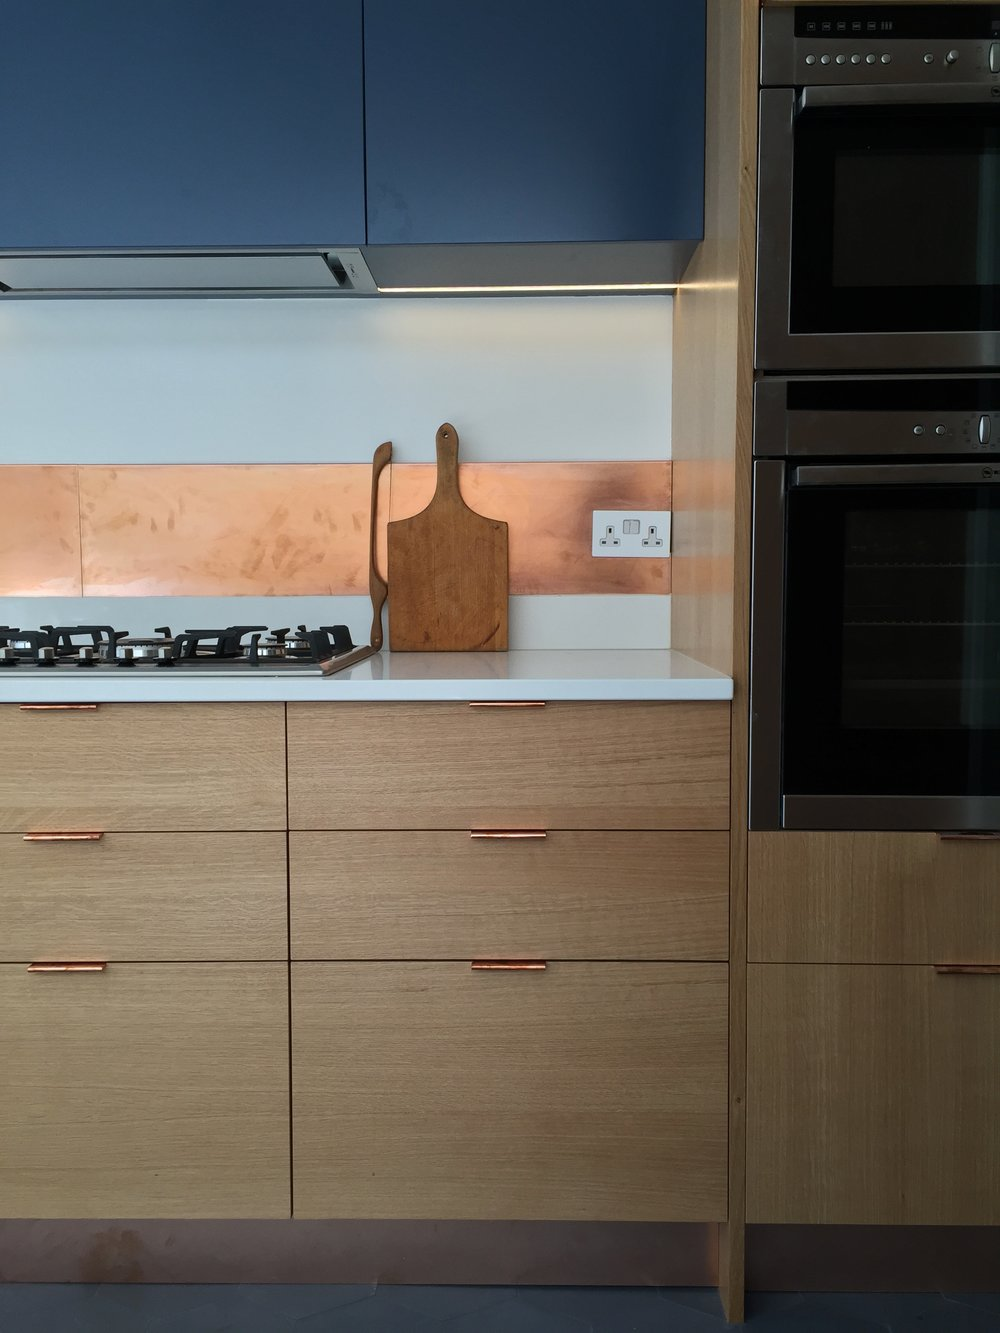 Kitchen cabinets with cooper detailing and handles